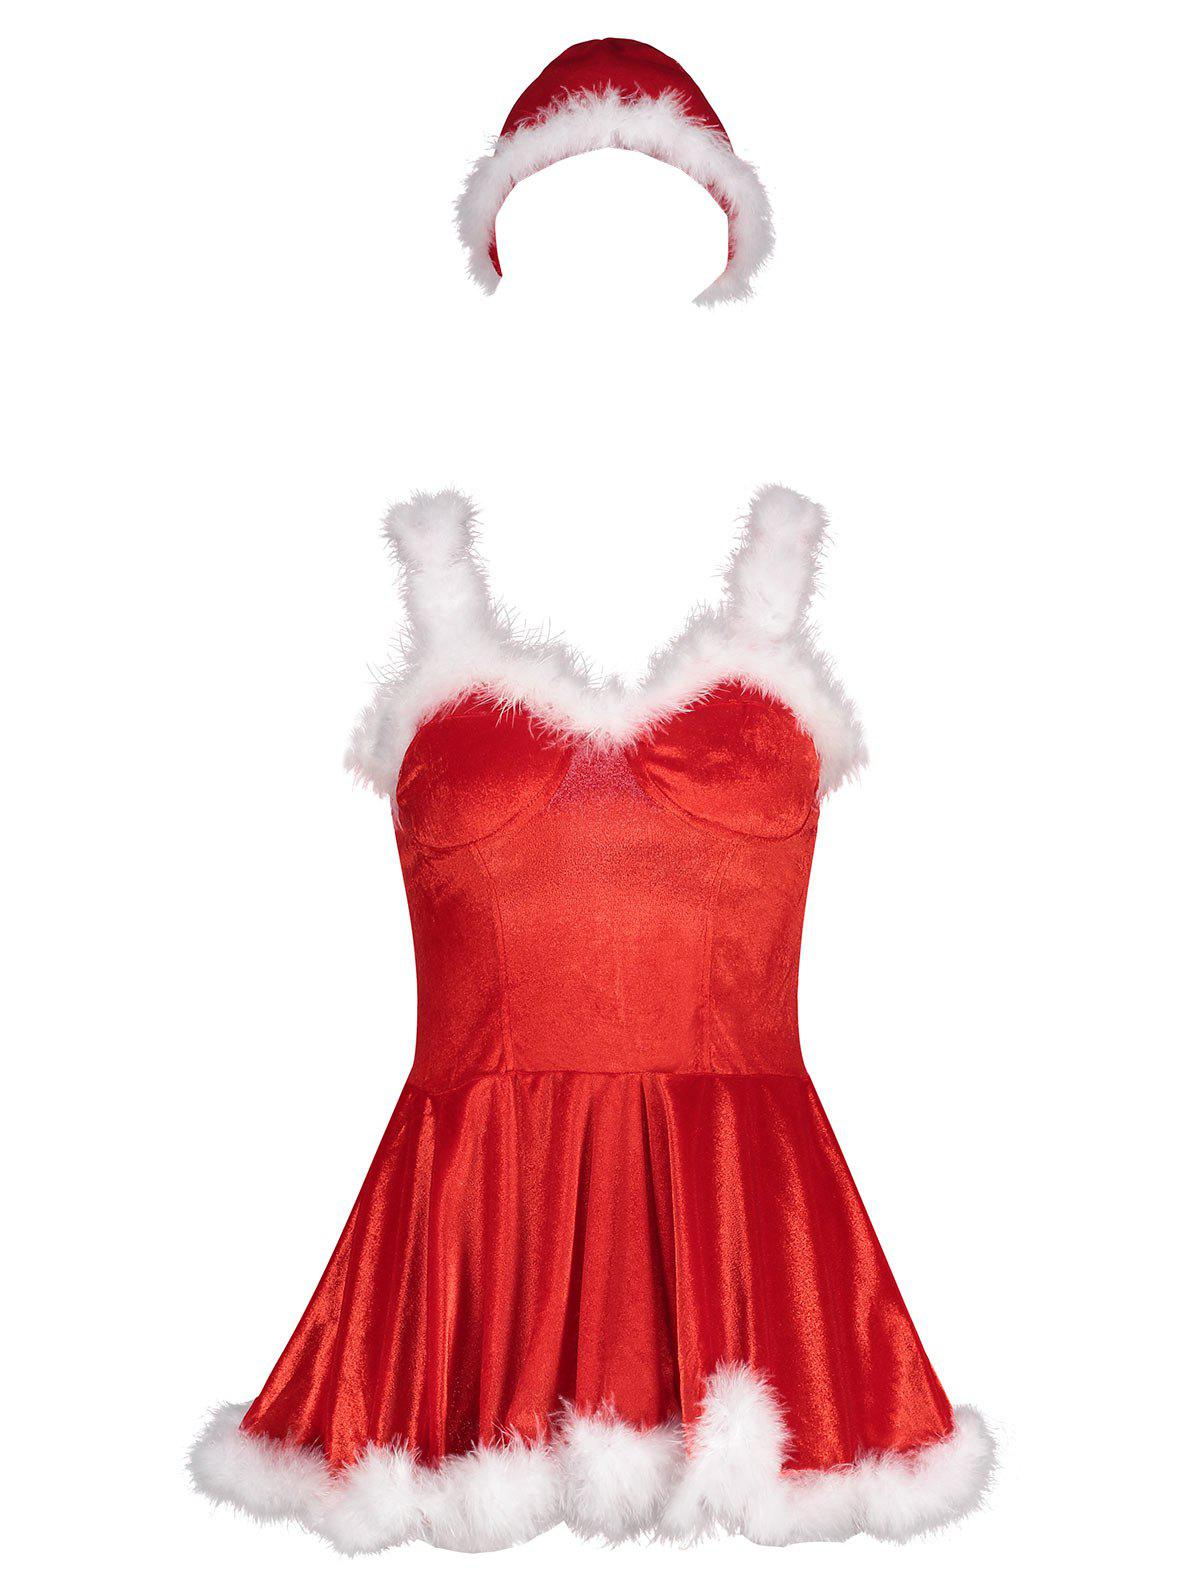 Velvet Feather Trim Christmas Costume DressWOMEN<br><br>Size: S; Color: RED; Age Group: Adult; Characters: Holiday; Sleeve Length: Sleeveless; Fabric Type: Velour; Material: Polyester; Weight: 0.3300kg; Package Contents: 1 x Dress  1 x Hat;